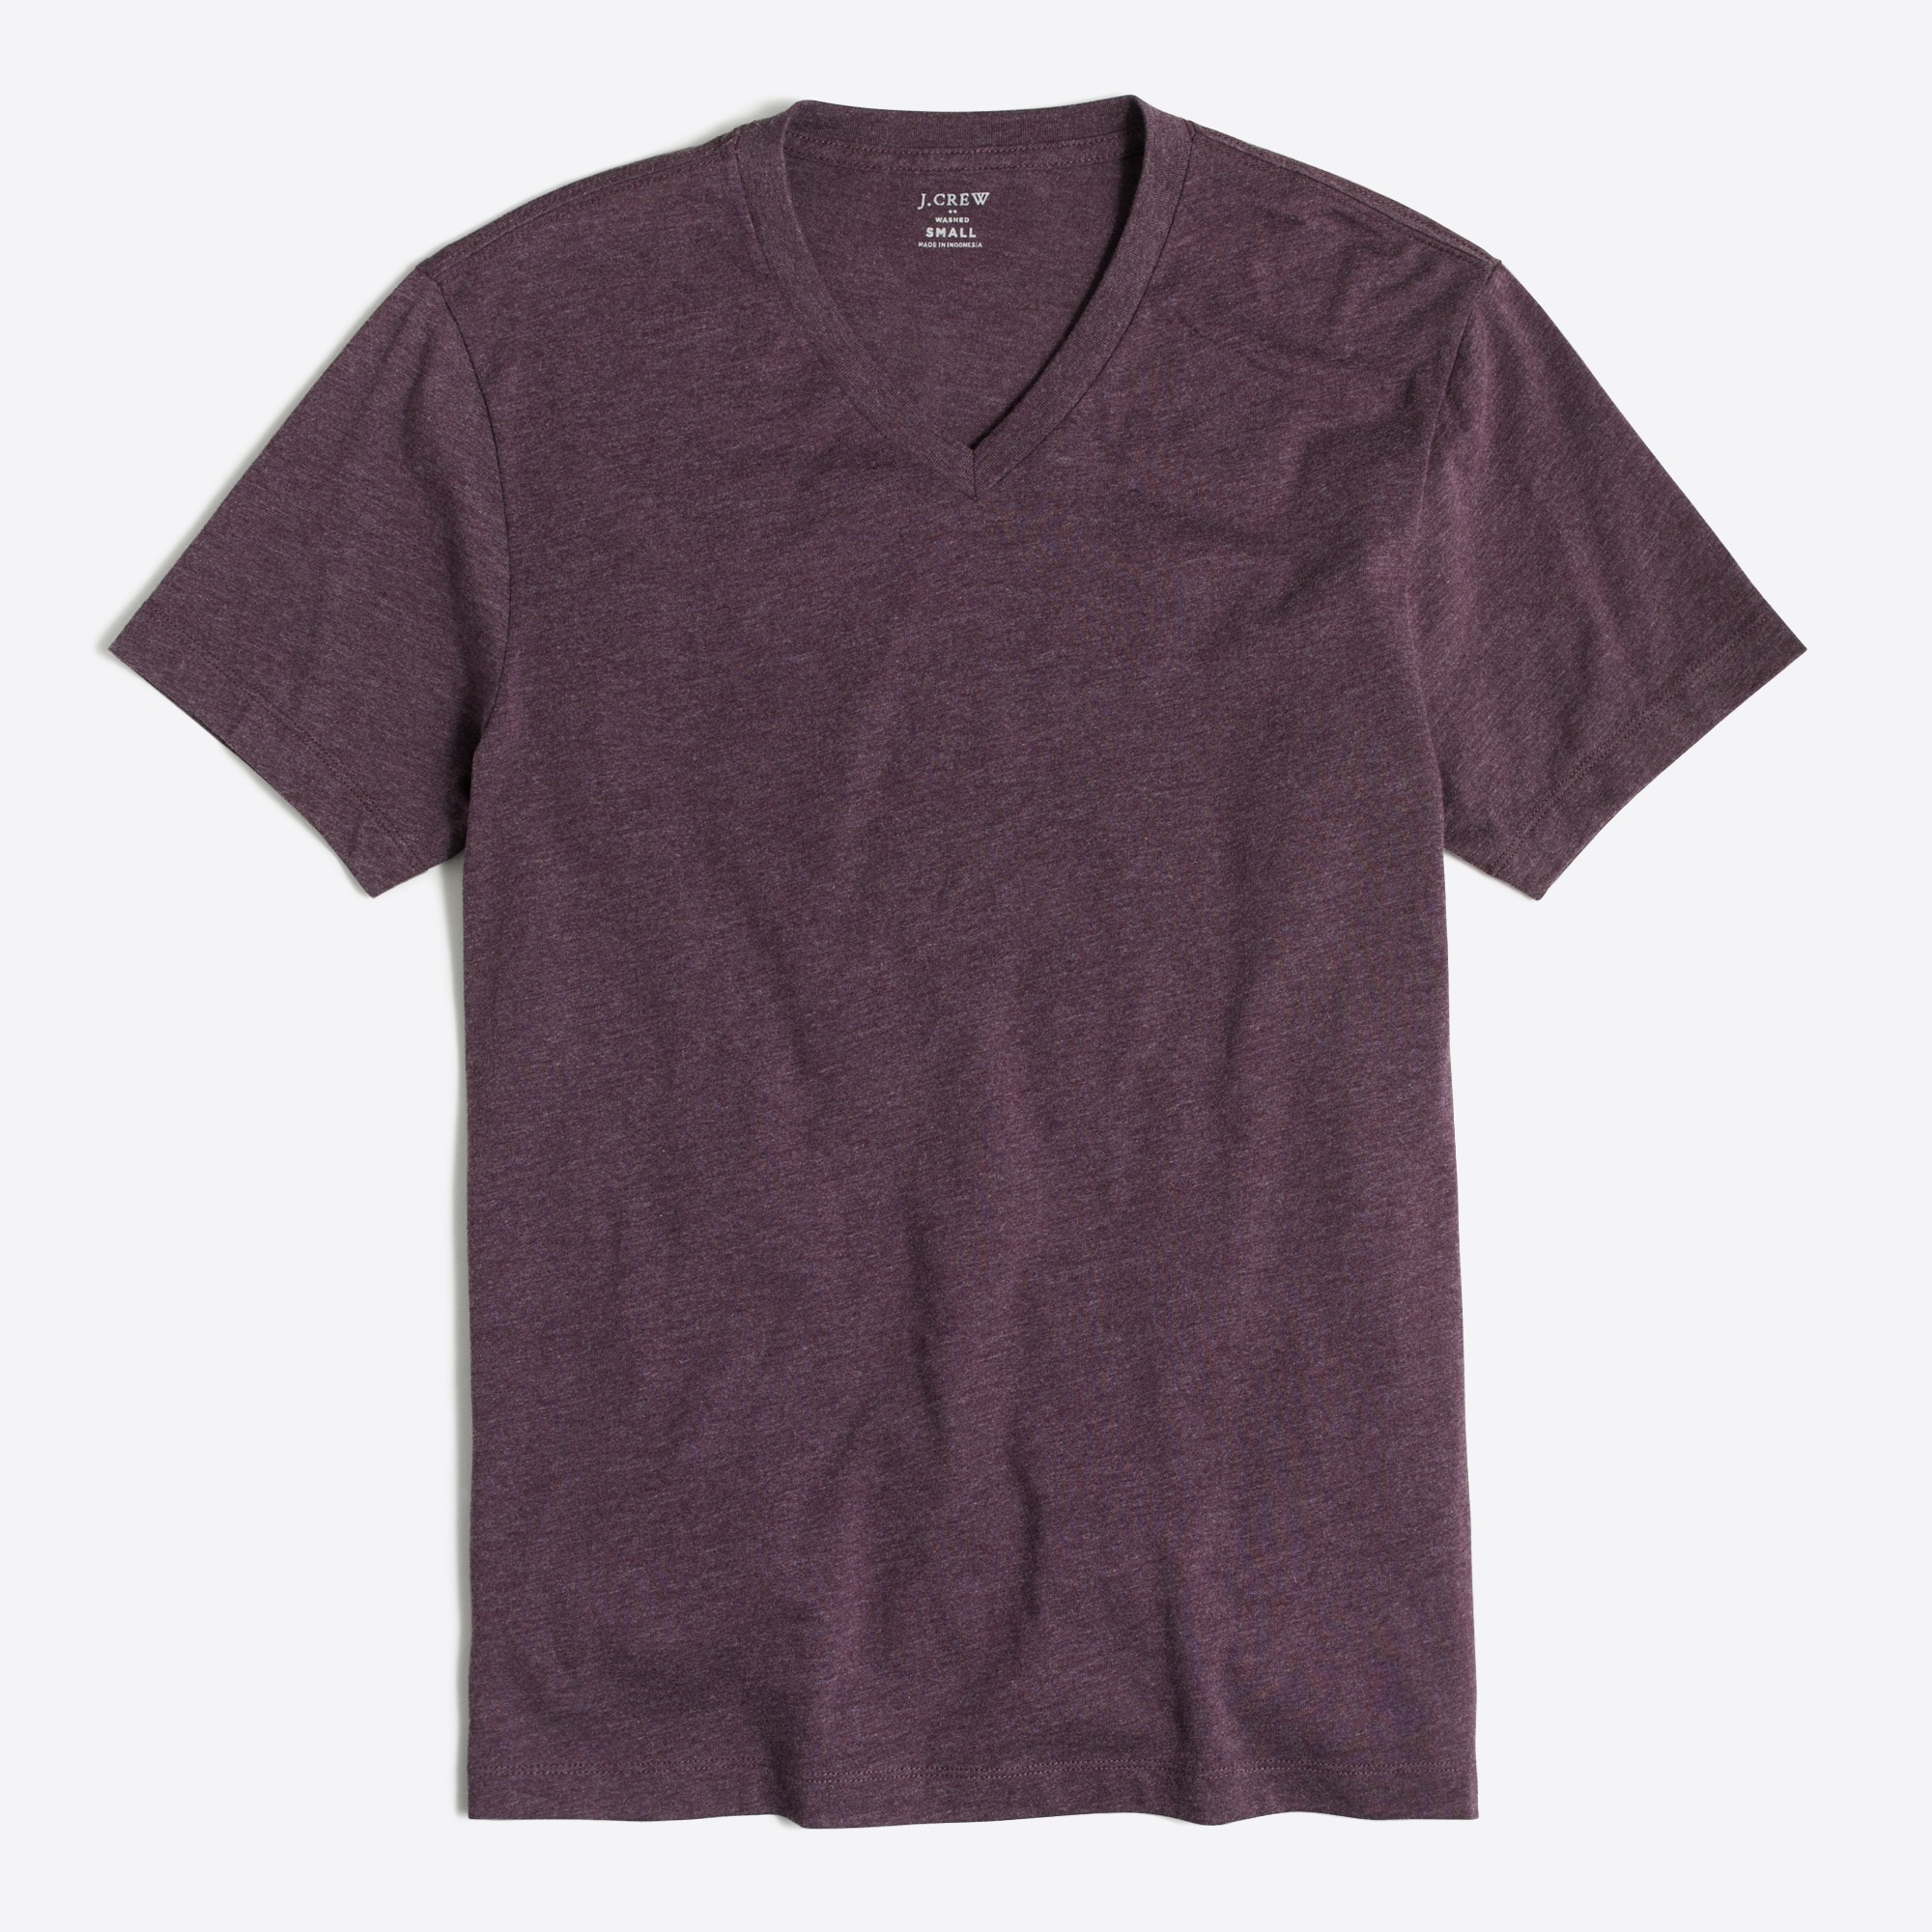 J.Crew Mercantile Heathered Broken-in V-neck T-shirt factorymen online exclusives c